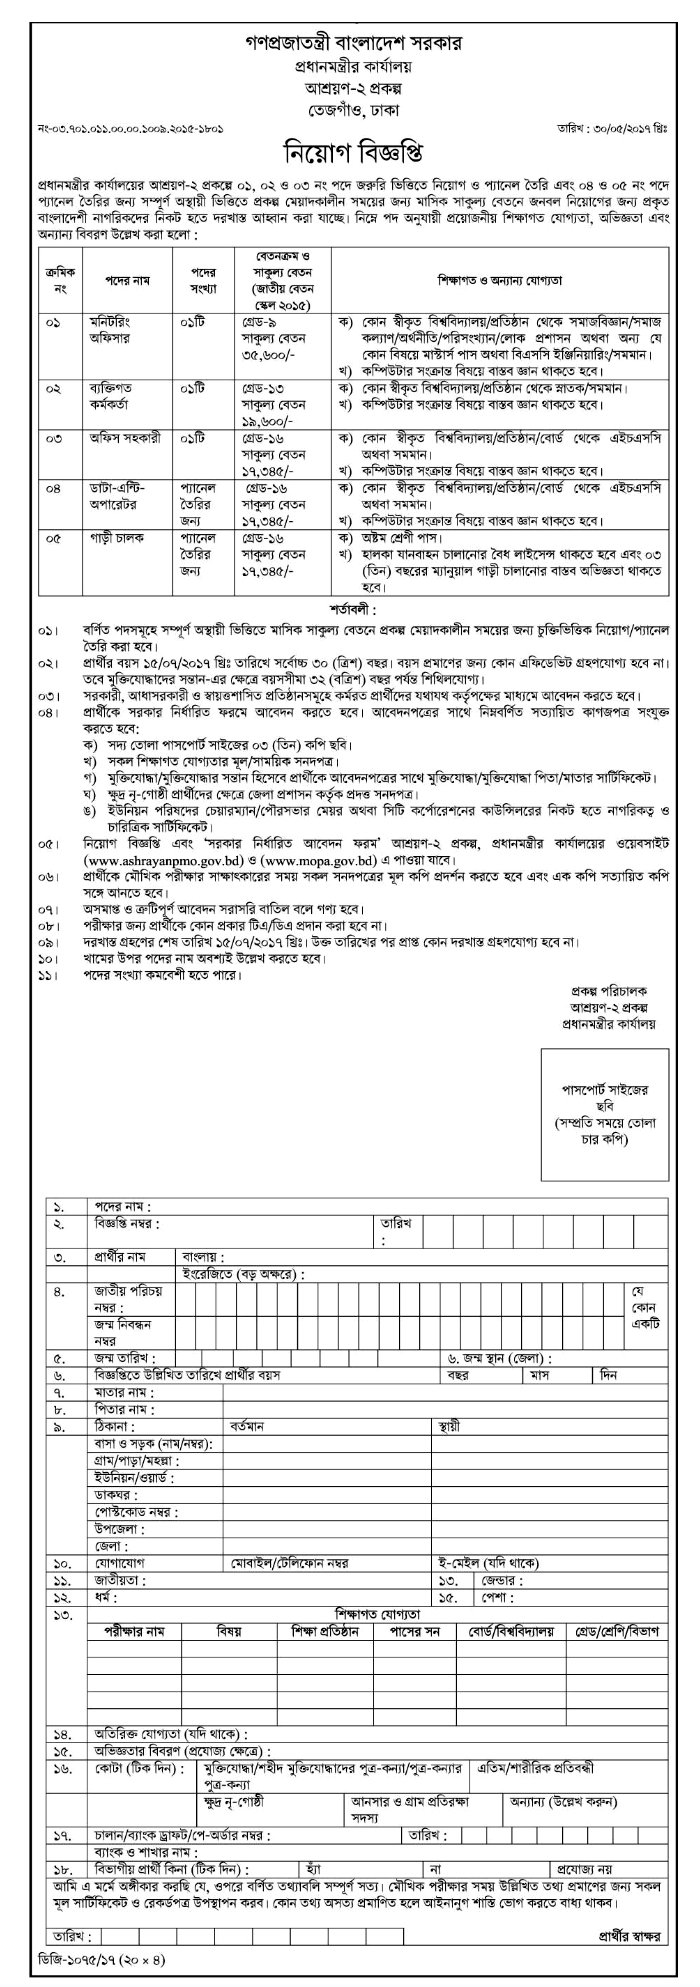 Www mopa gov bd application from